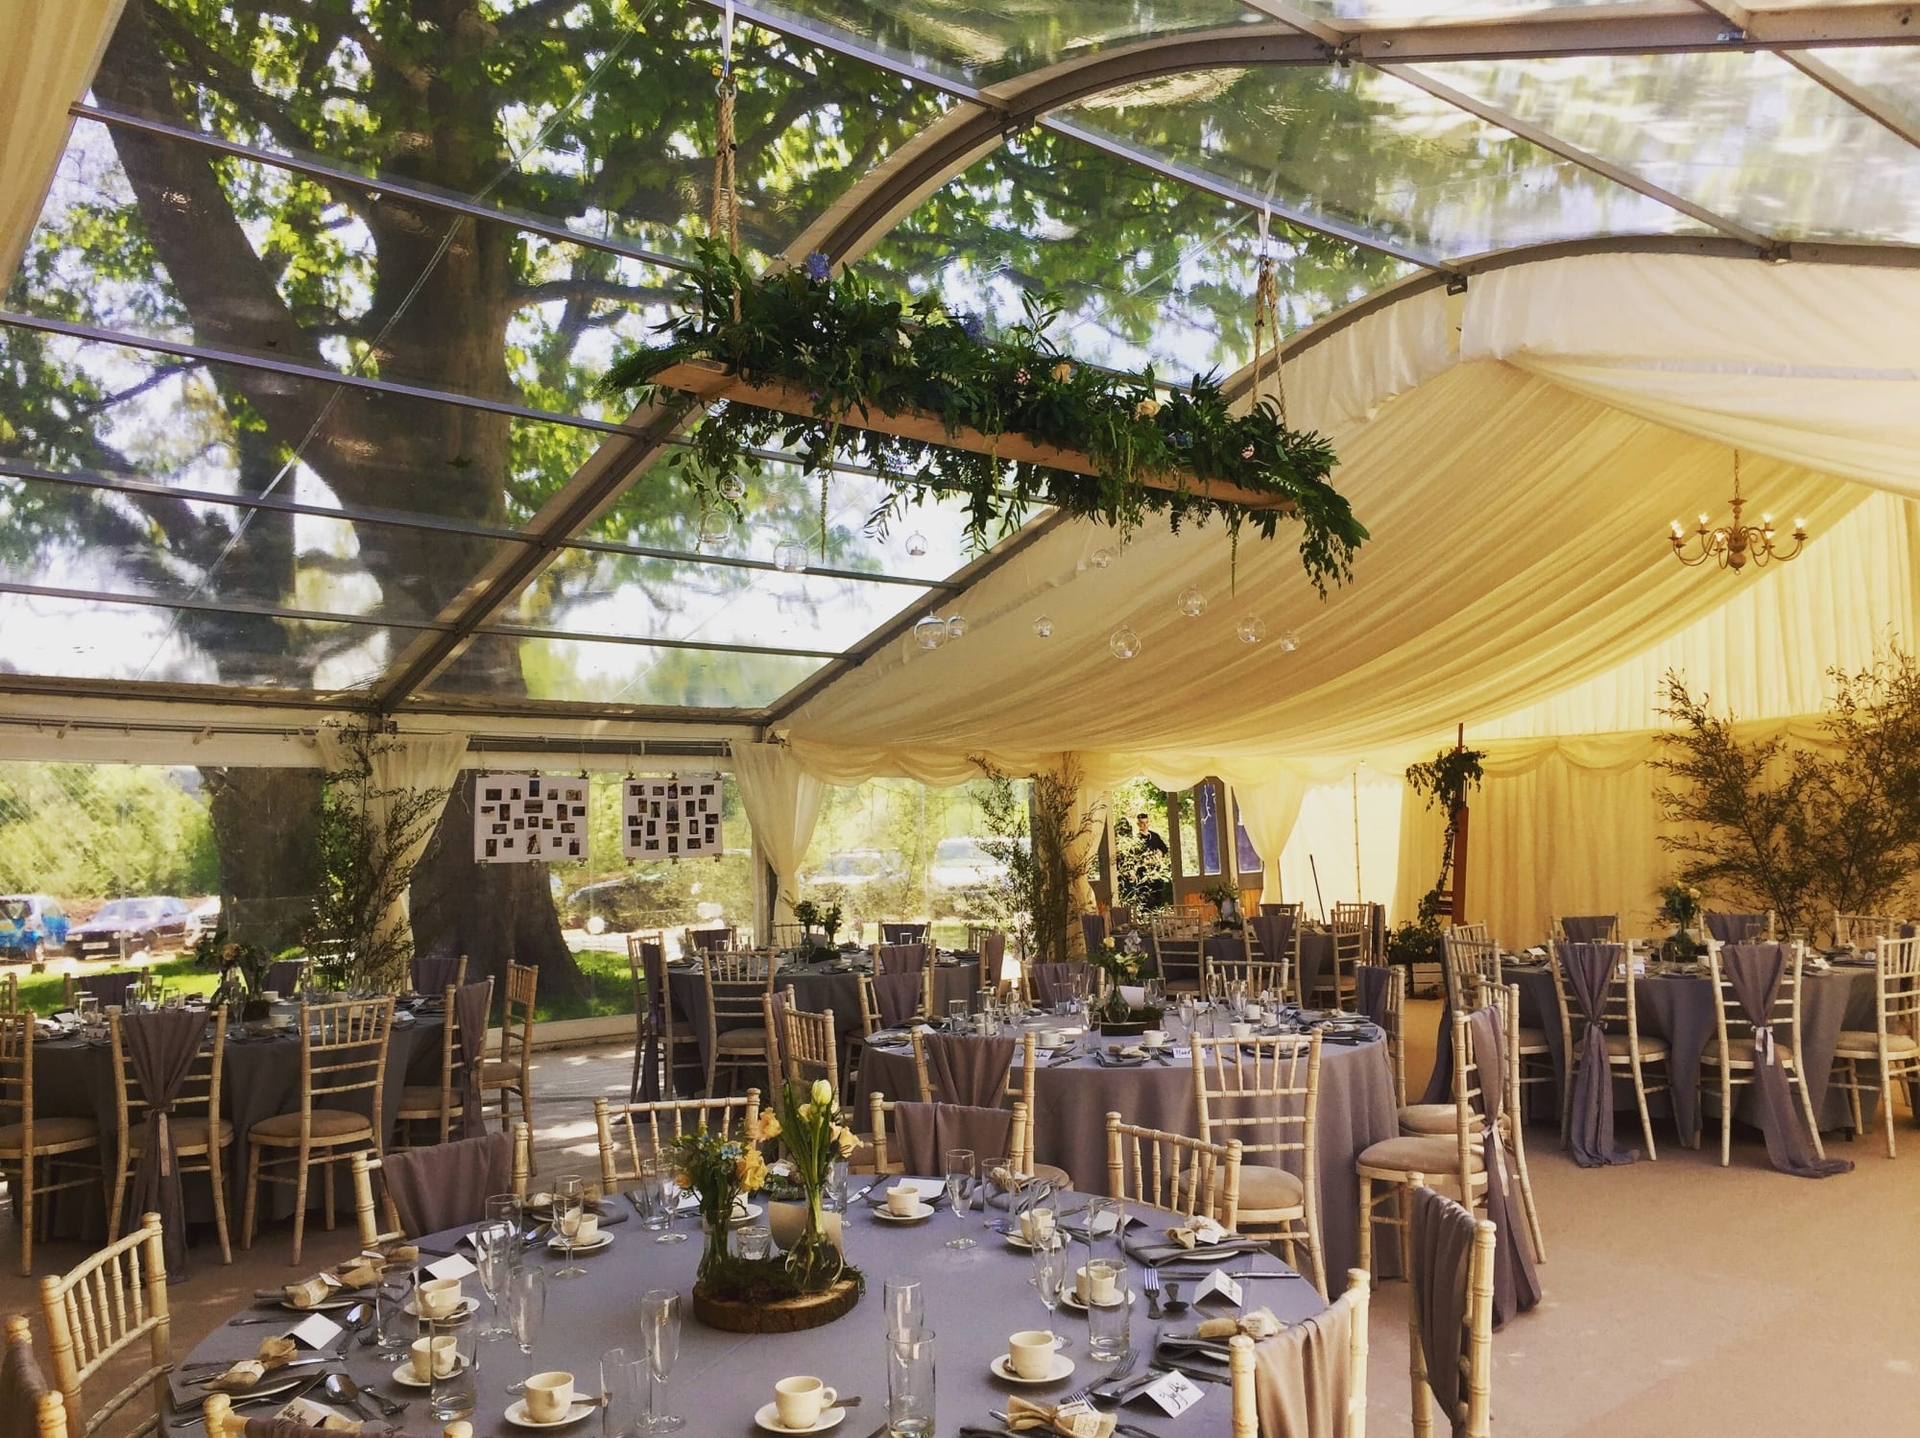 Fomral dining area in a clear roof marquee with ivory linings and round tables